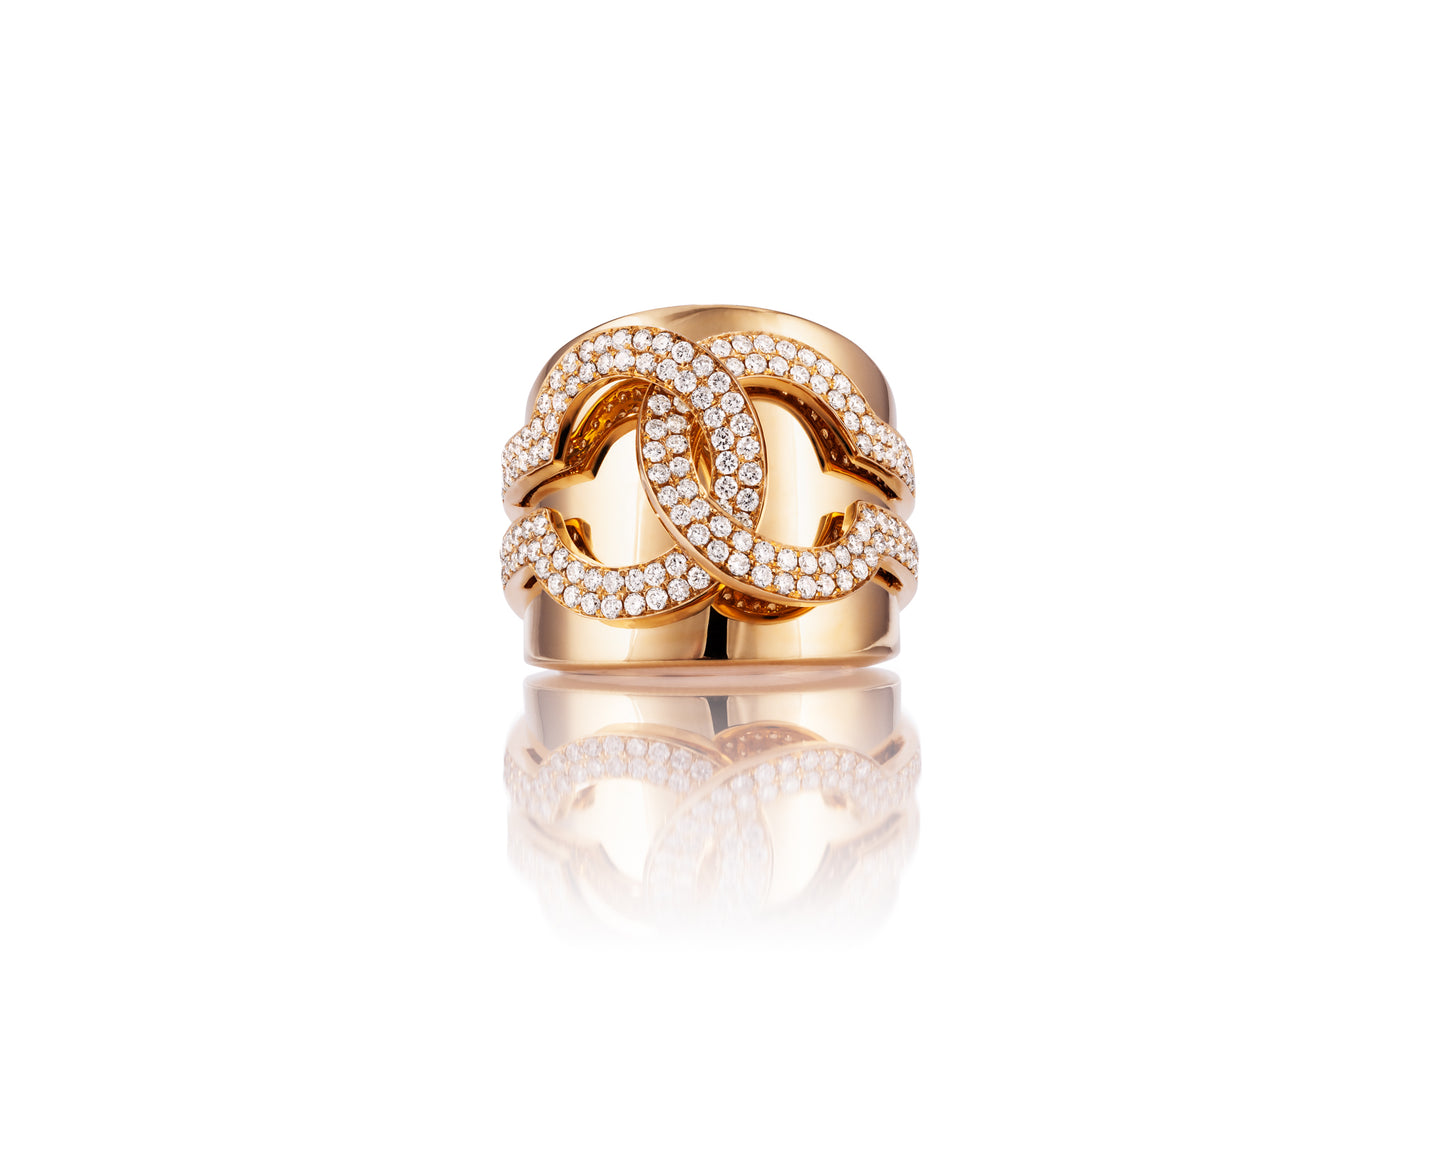 18kt Yellow Gold, 1.2ct Diamond Ring